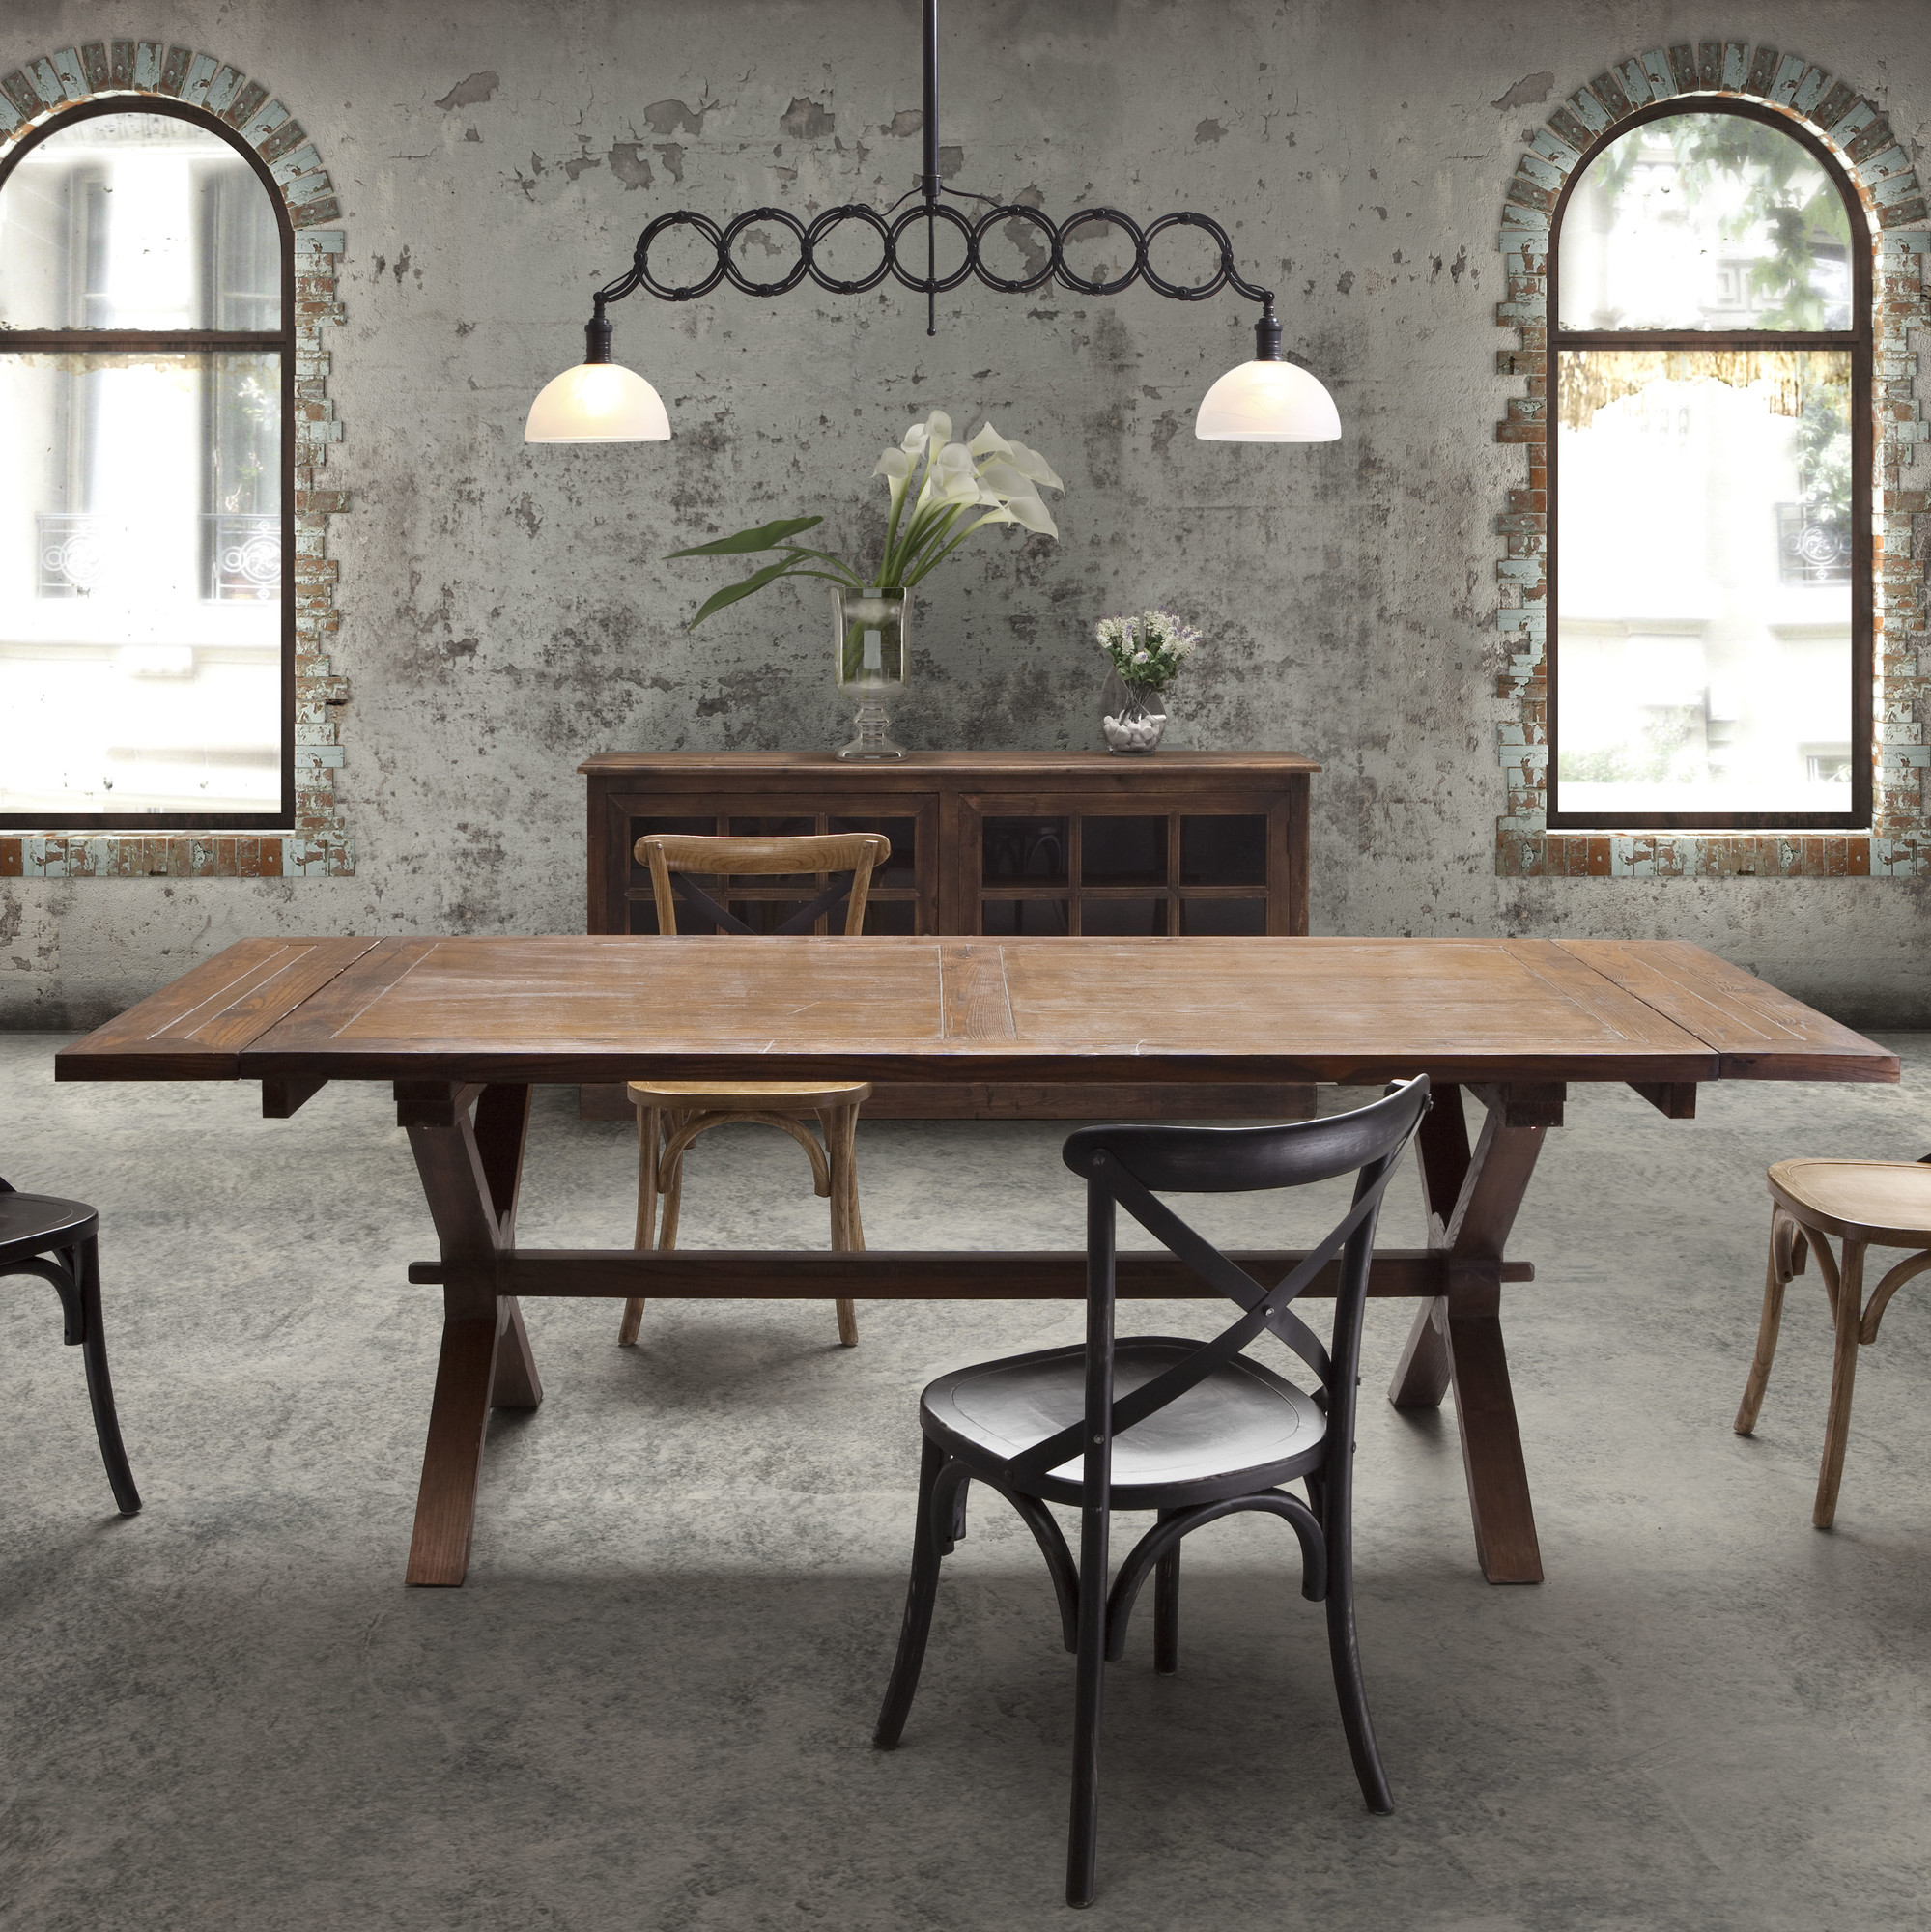 Zuo laurel heights table advanced interior designs for Advance interior designs